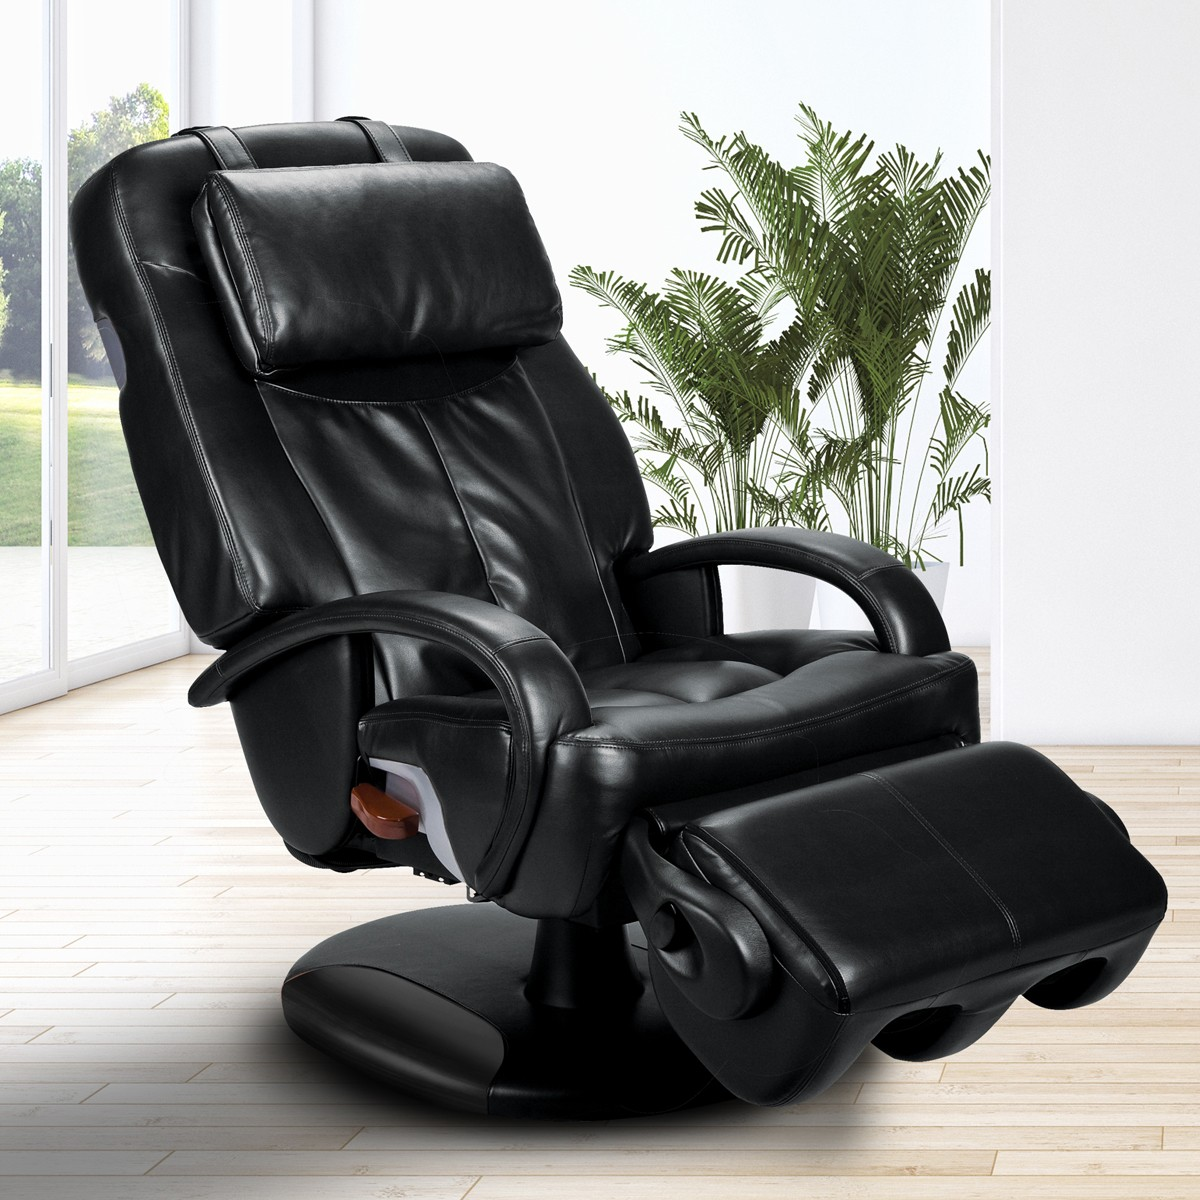 massage chairs thermostretch® ht-7120 massage chair VPAJEOX